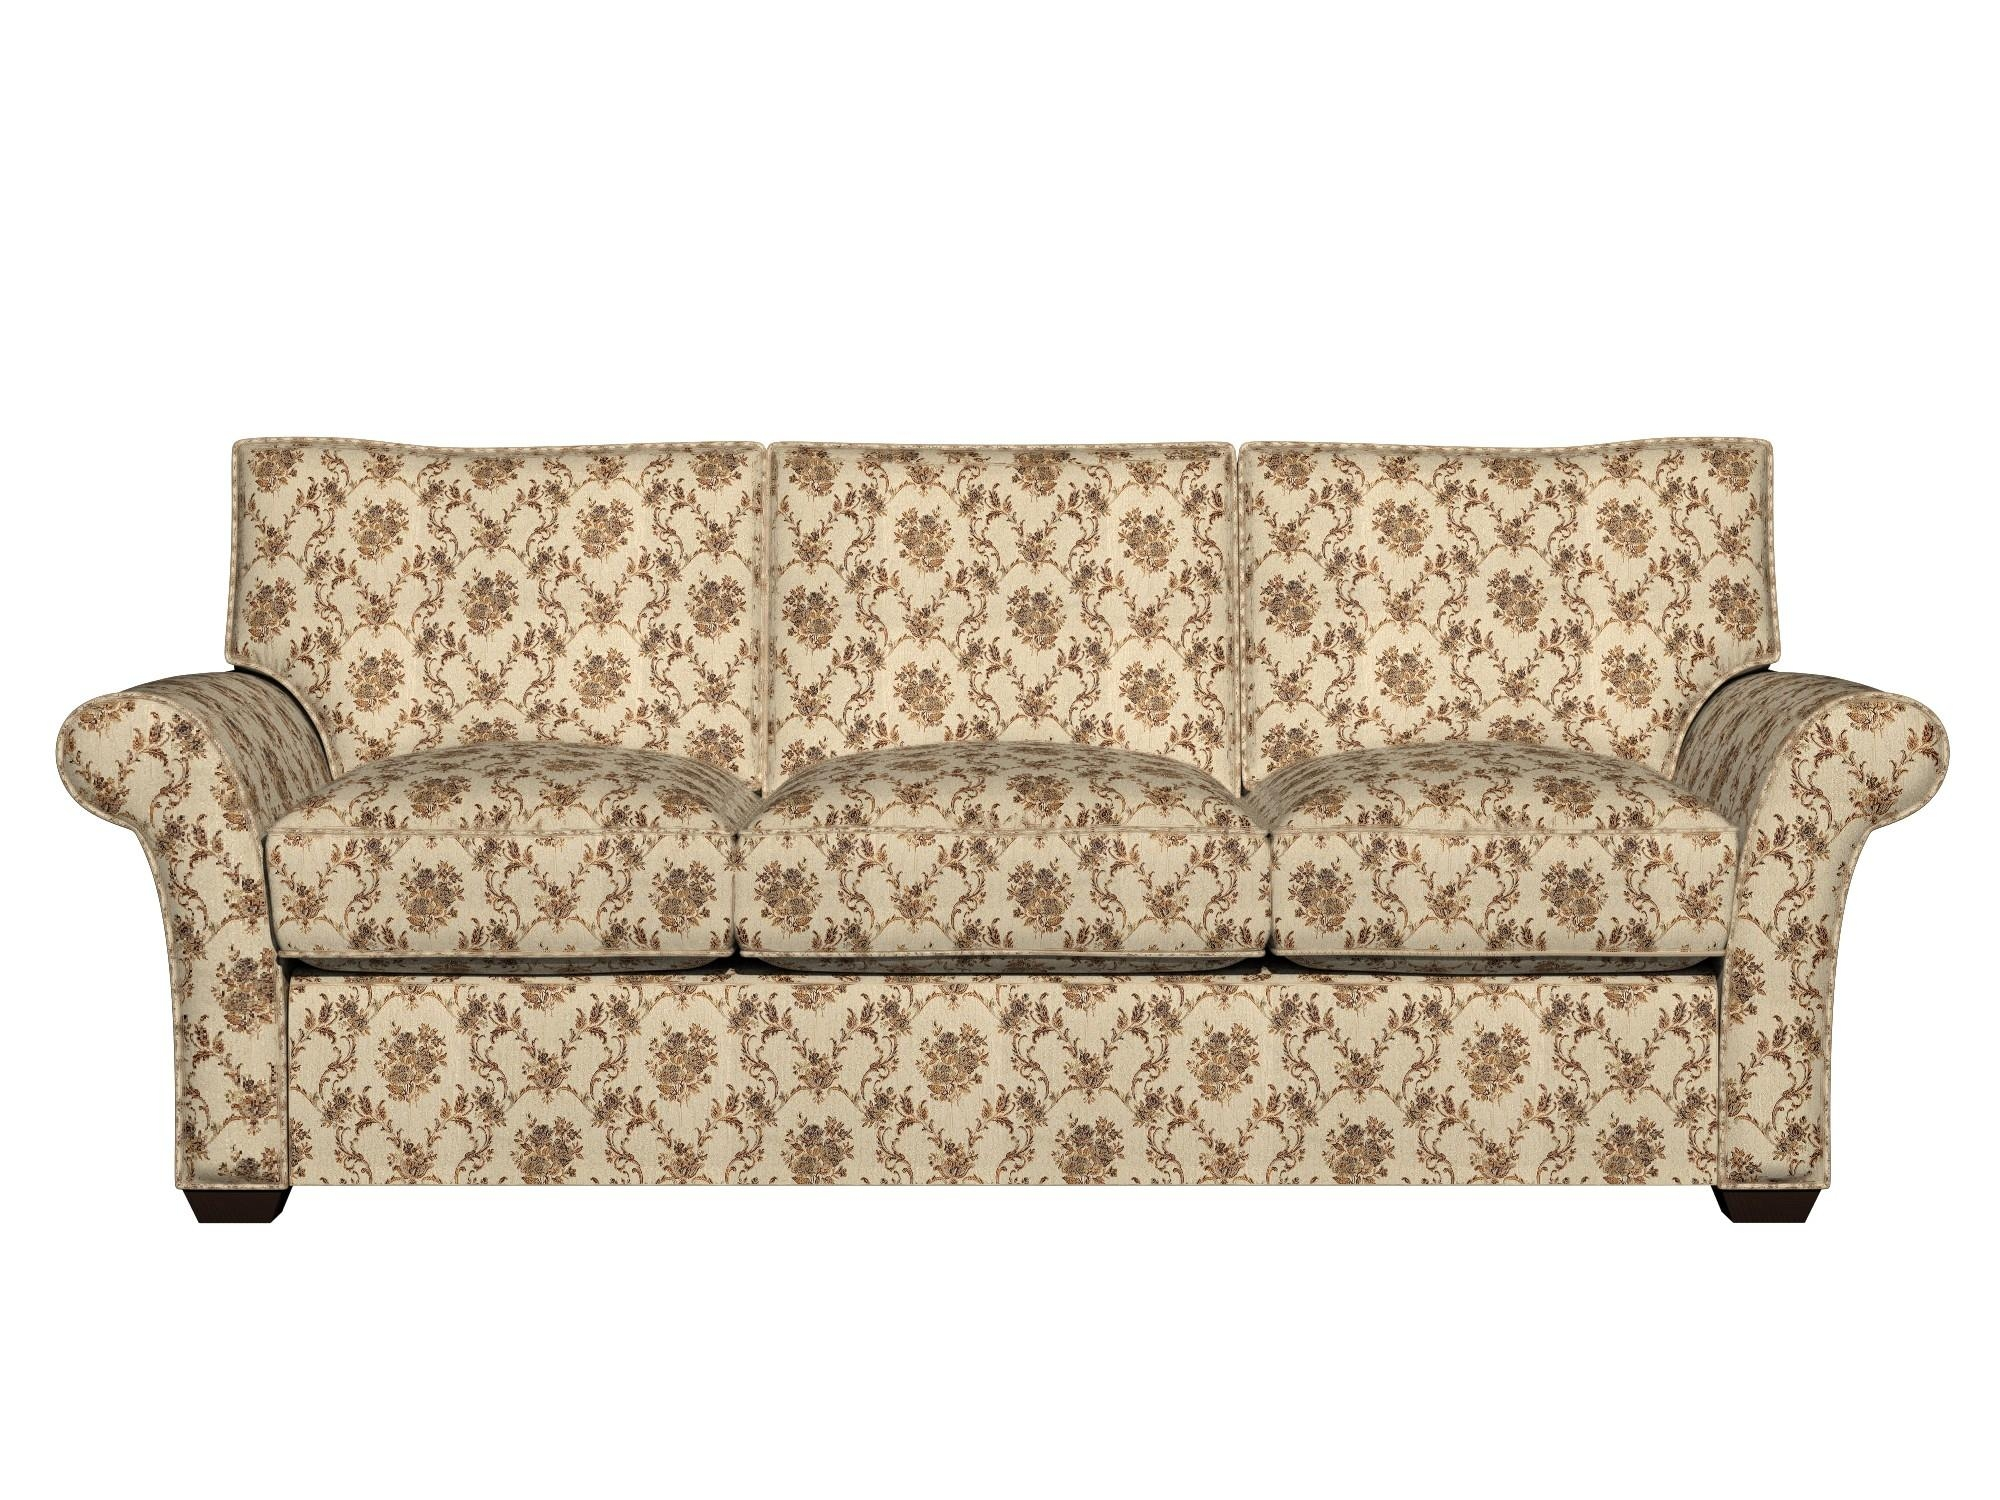 A0014E Beige, Gold, Brown And Ivory Floral Brocade Upholstery With Regard To Brocade Sofas (Image 10 of 20)